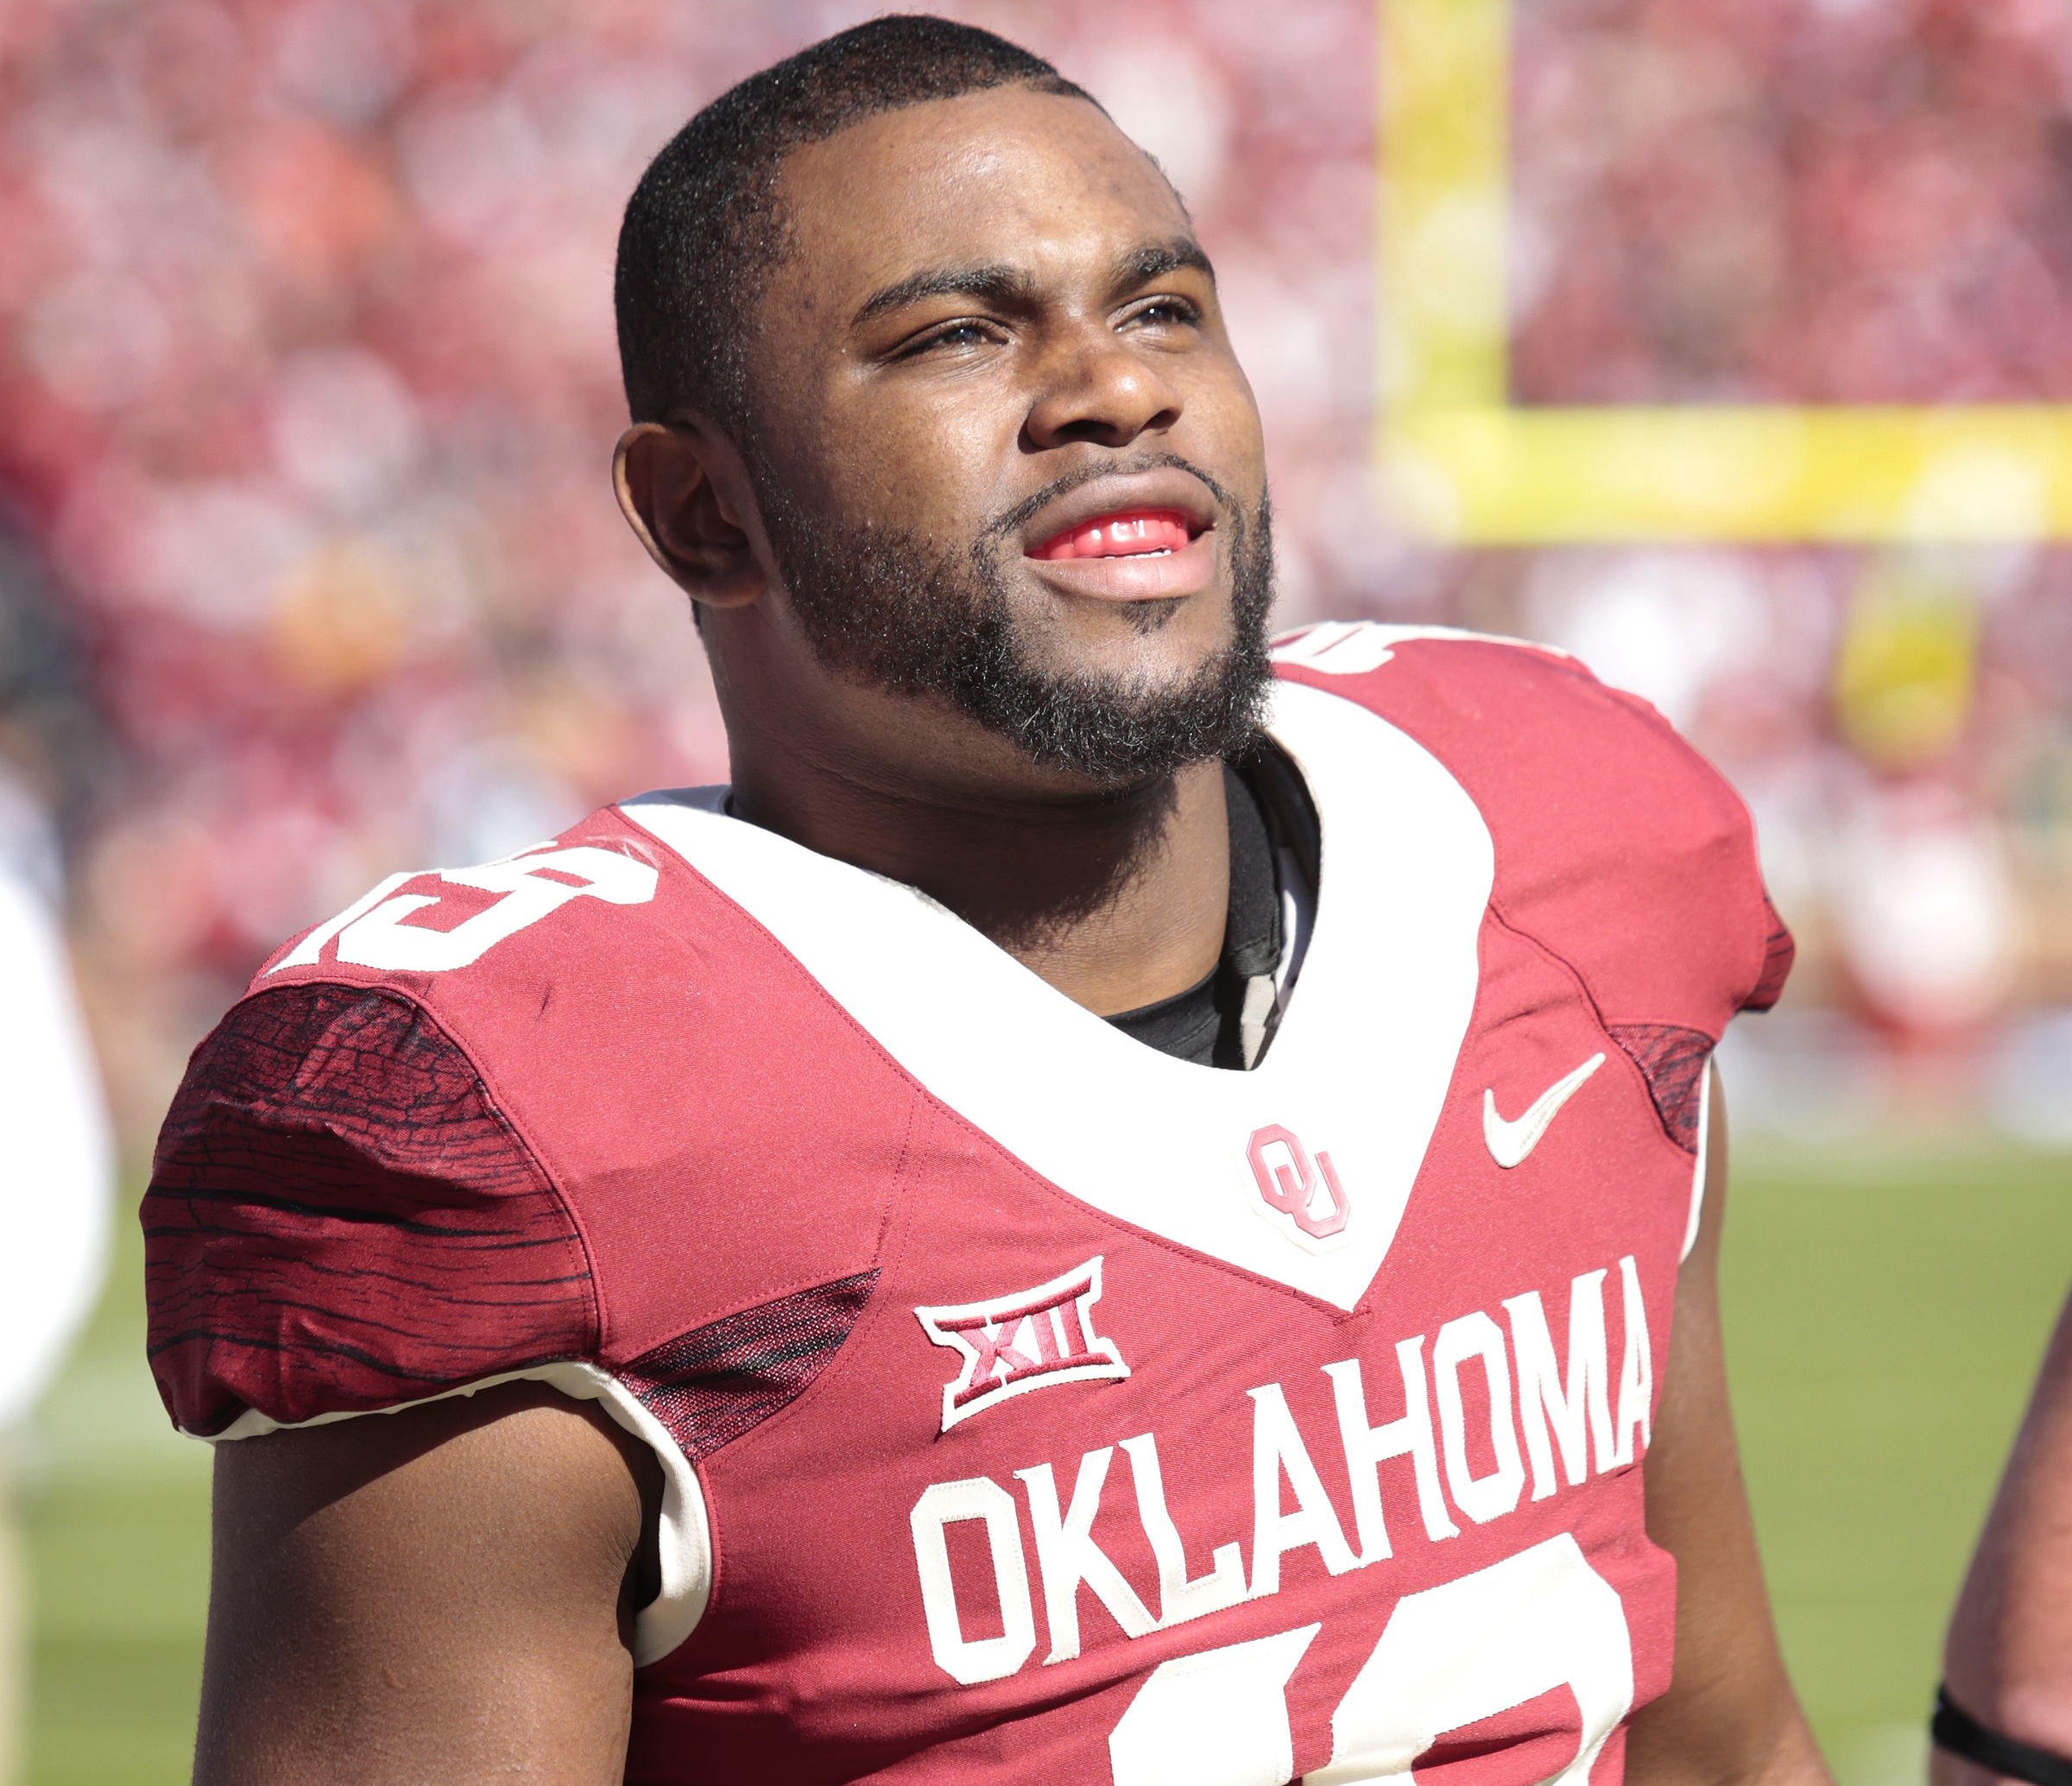 NORMAN, OK - NOVEMBER 8:  Linebacker Eric Striker #19 of the Oklahoma Sooners watches the scoreboard before the game against the Baylor Bears November 8, 2014 at Gaylord Family-Oklahoma Memorial Stadium in Norman, Oklahoma. Baylor defeated Oklahoma 48-14.  (Photo by Brett Deering/Getty Images)